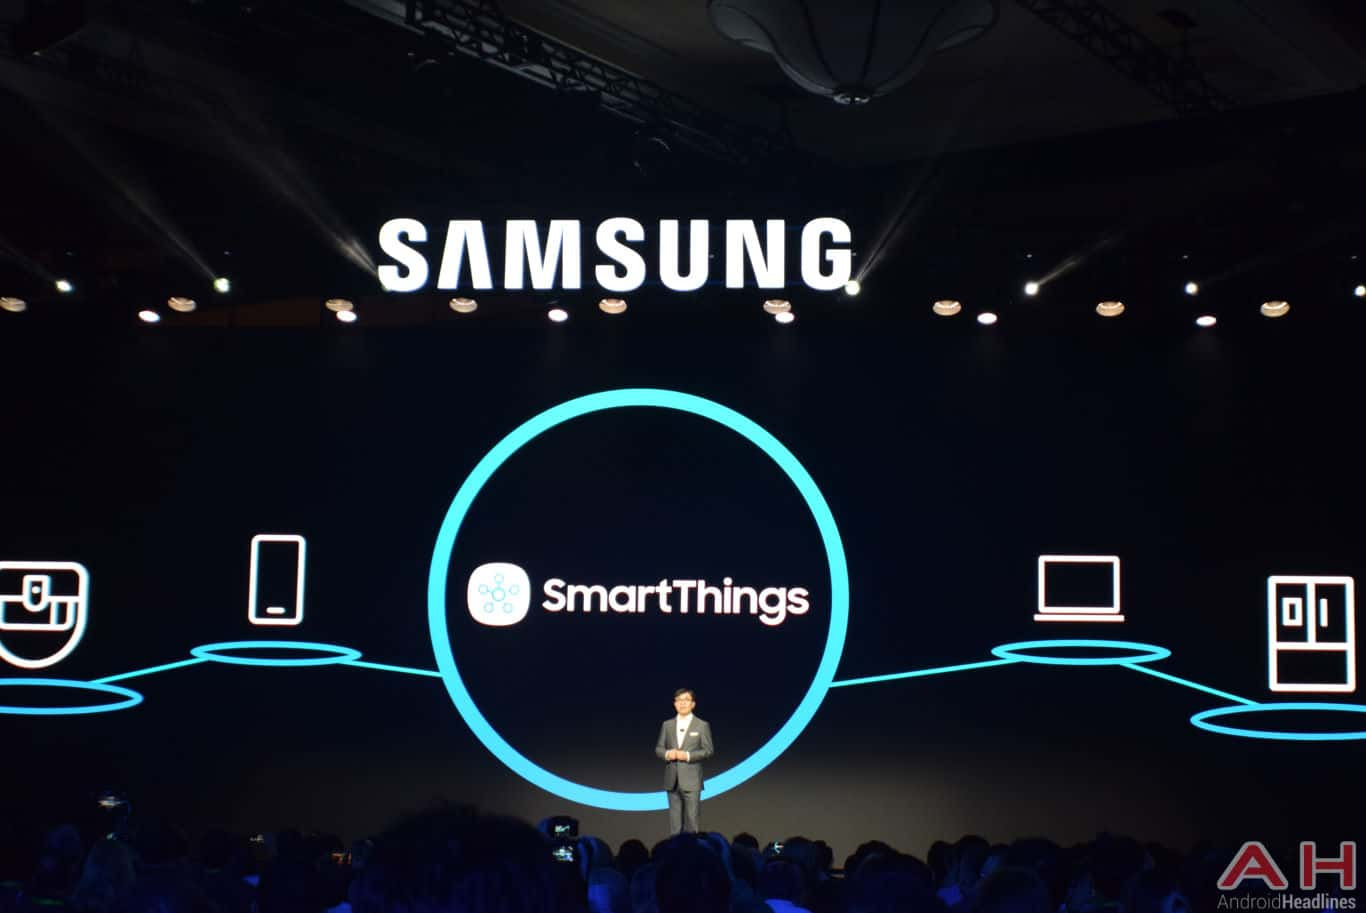 Samsung SmartThings CES 2018 AH 21 1